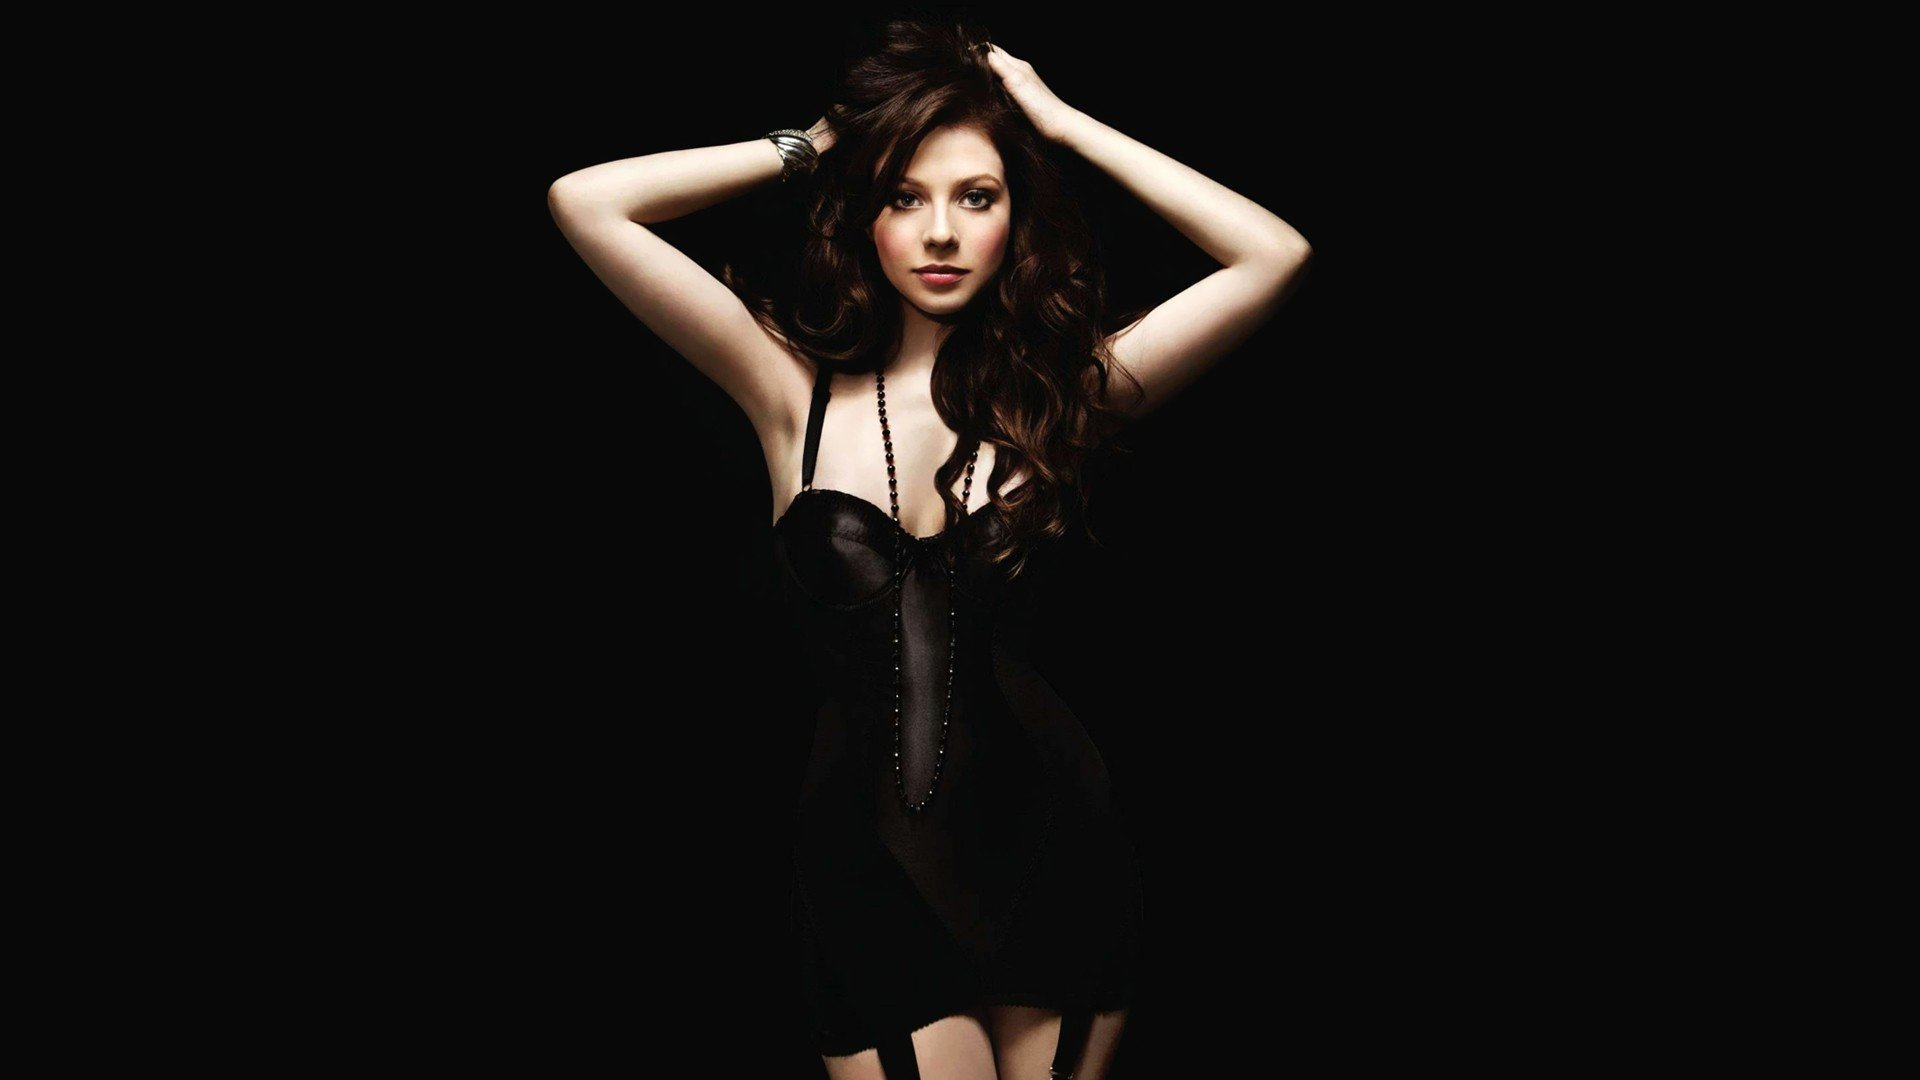 Awesome Michelle Trachtenberg free wallpaper ID:353035 for hd 1920x1080 PC